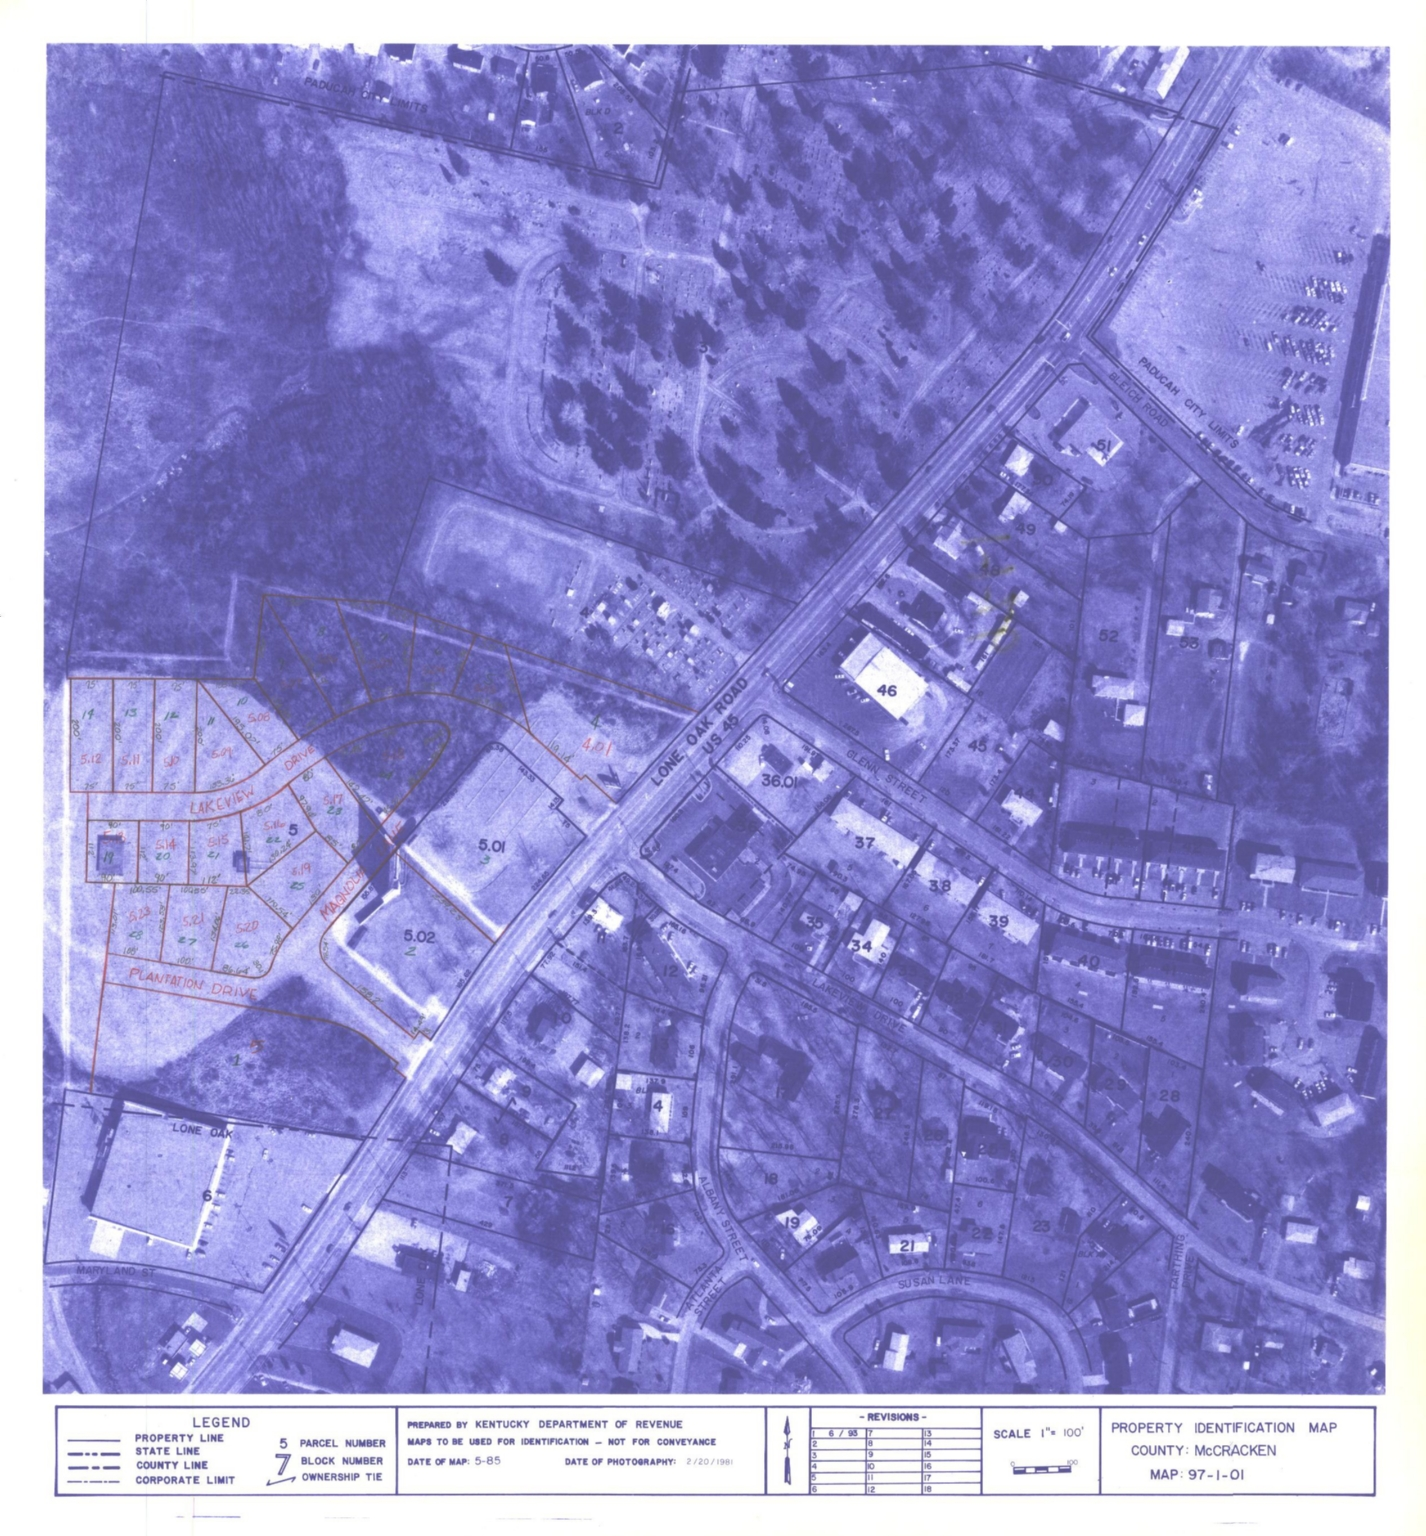 Property Identification Map McCracken County, Map 97-1-01